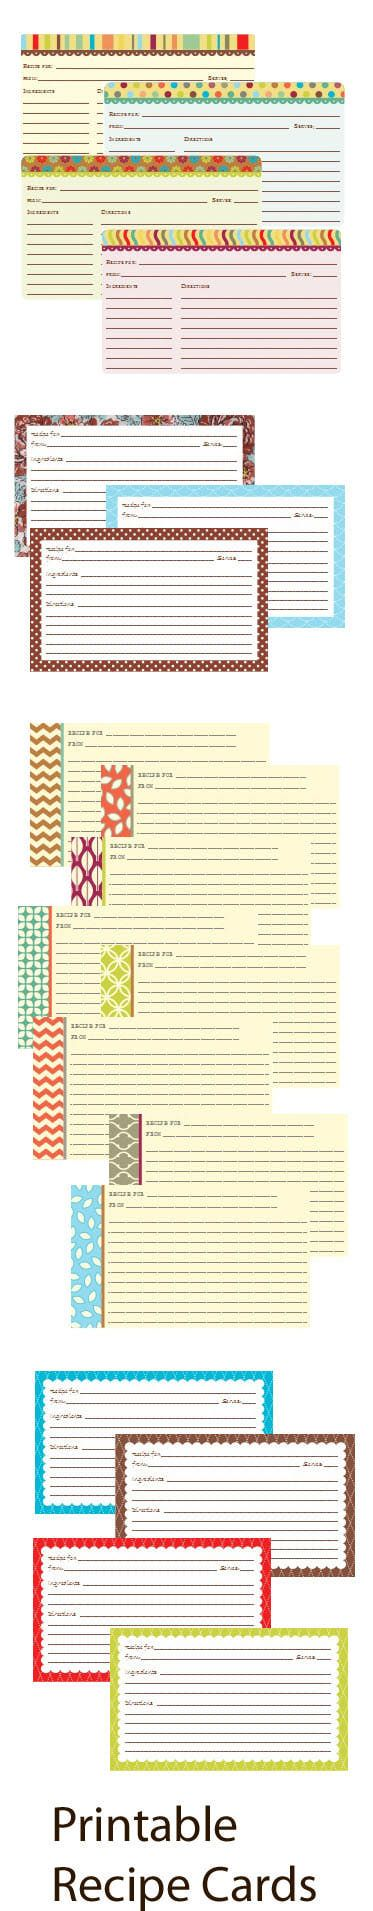 Free Printable Recipe Cards - Four Sets to Choose From